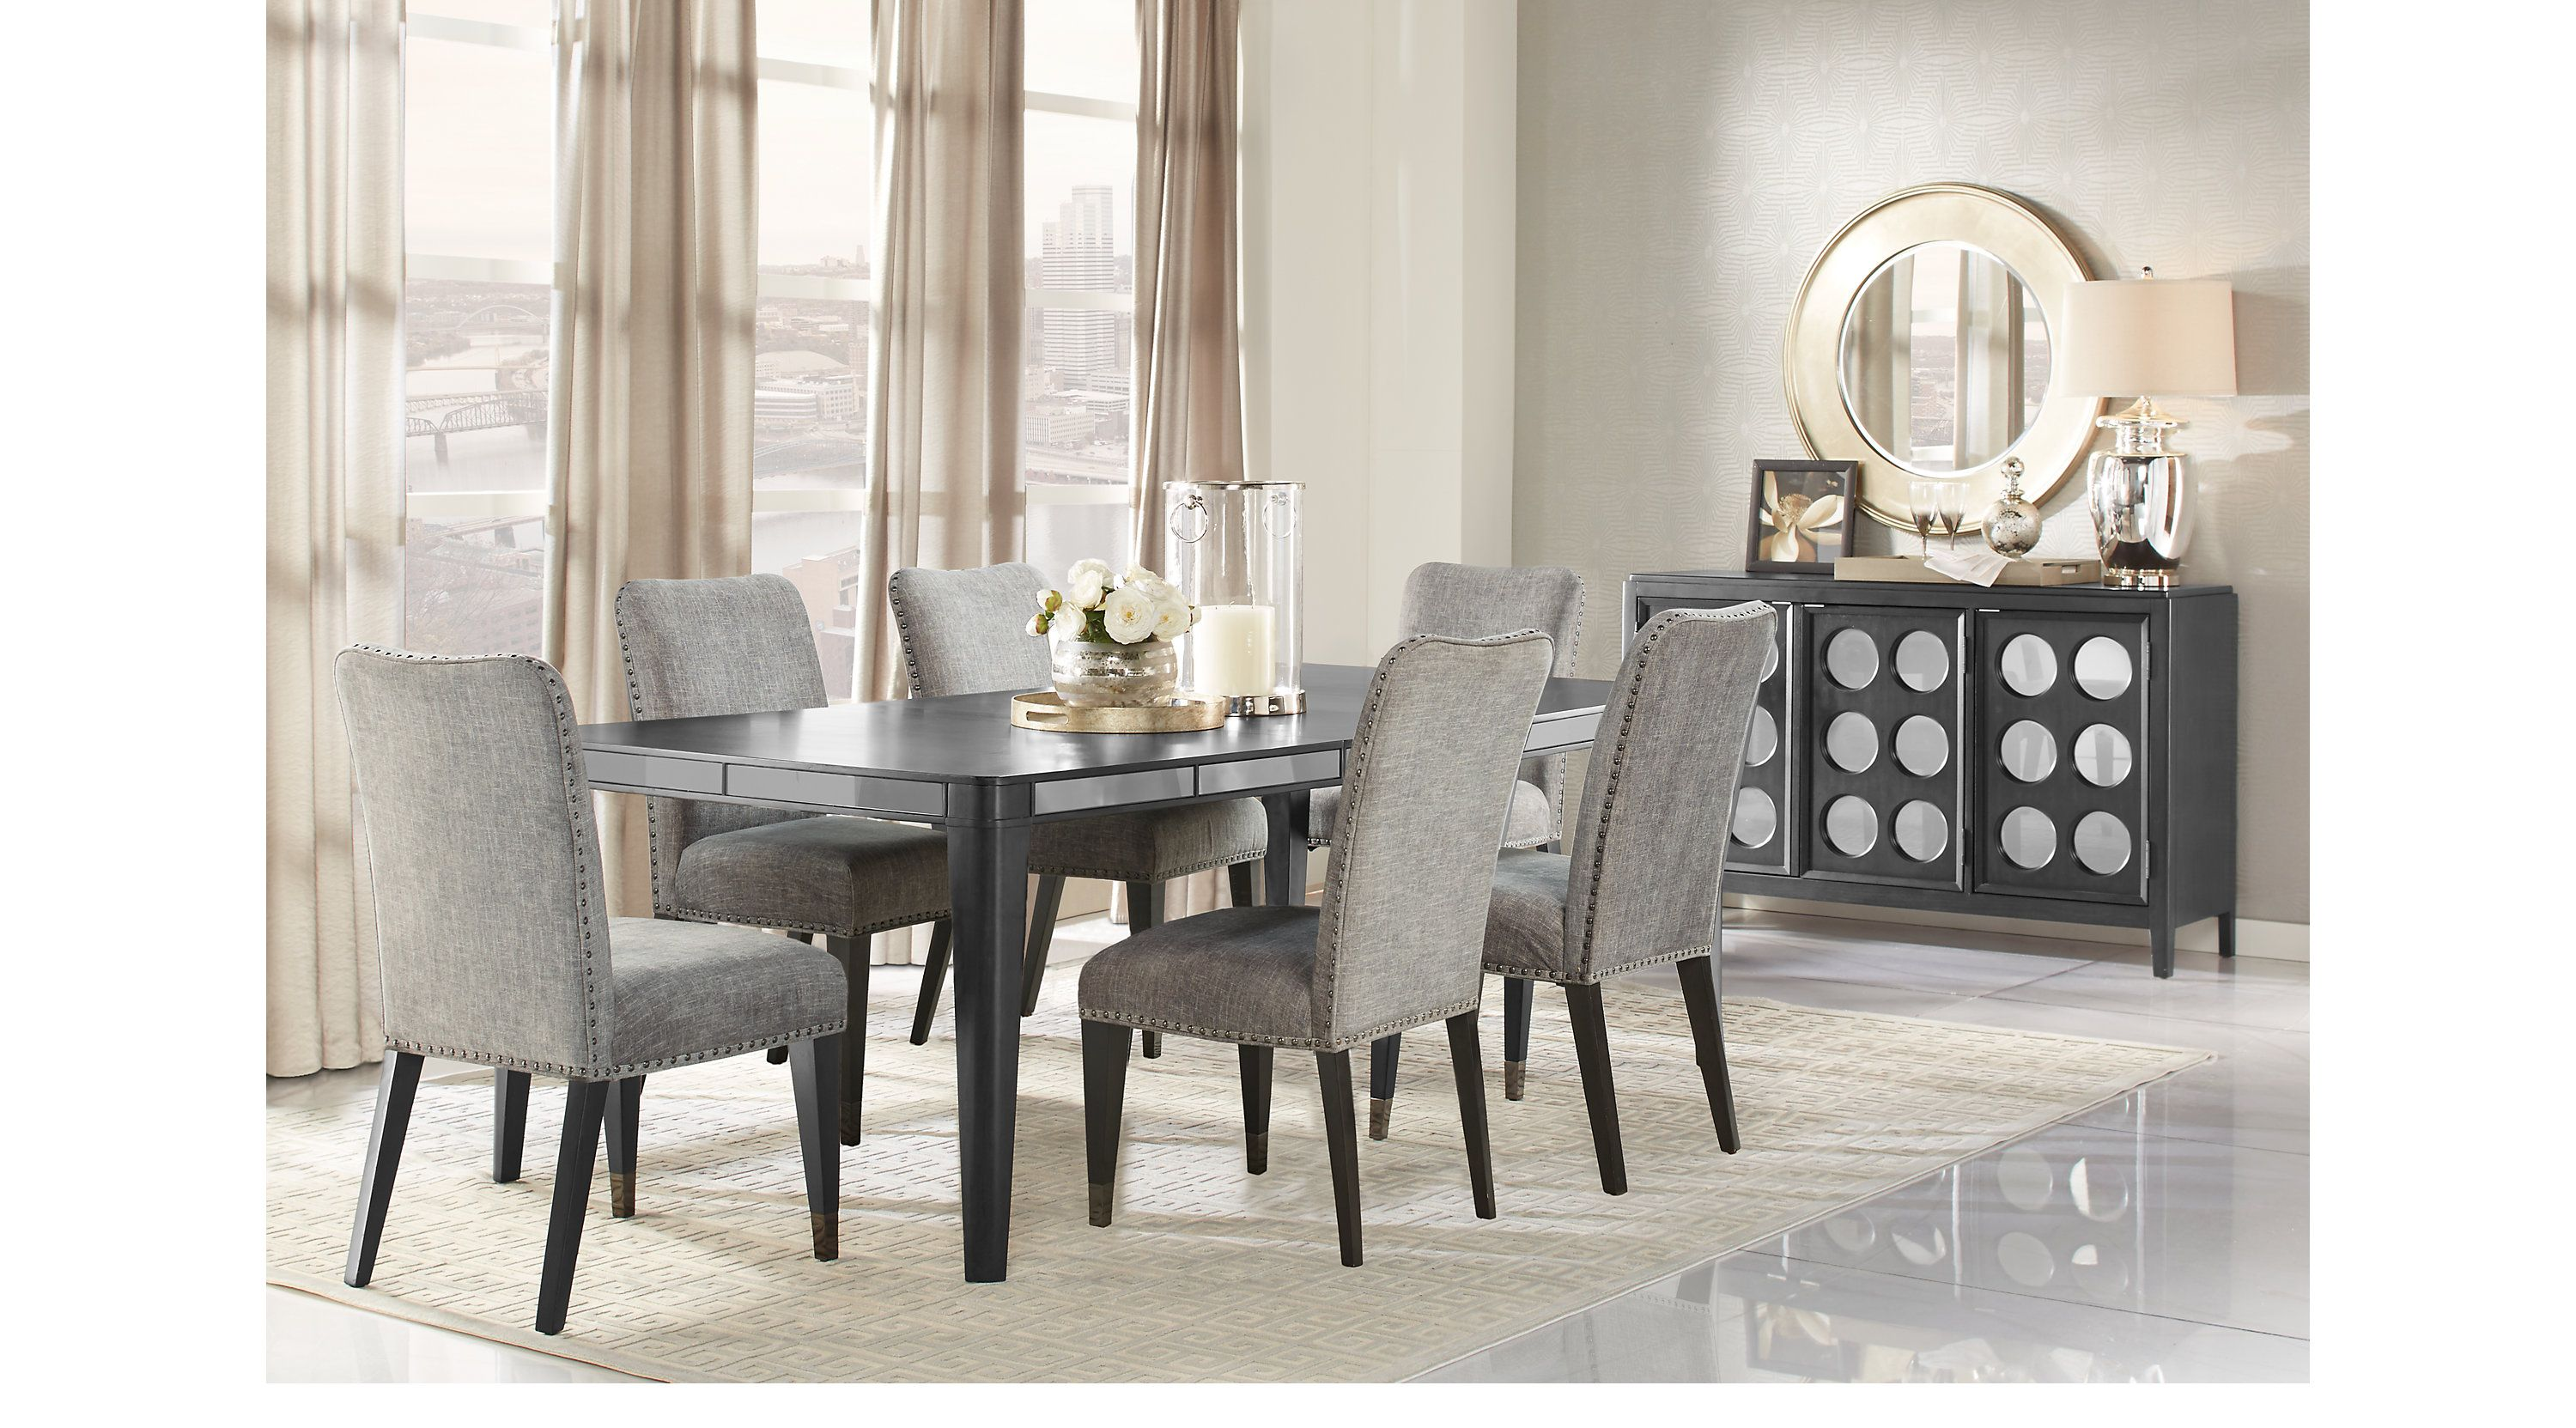 Hill Creek Black 5 Pc Rectangle Dining Room $777 00 Find